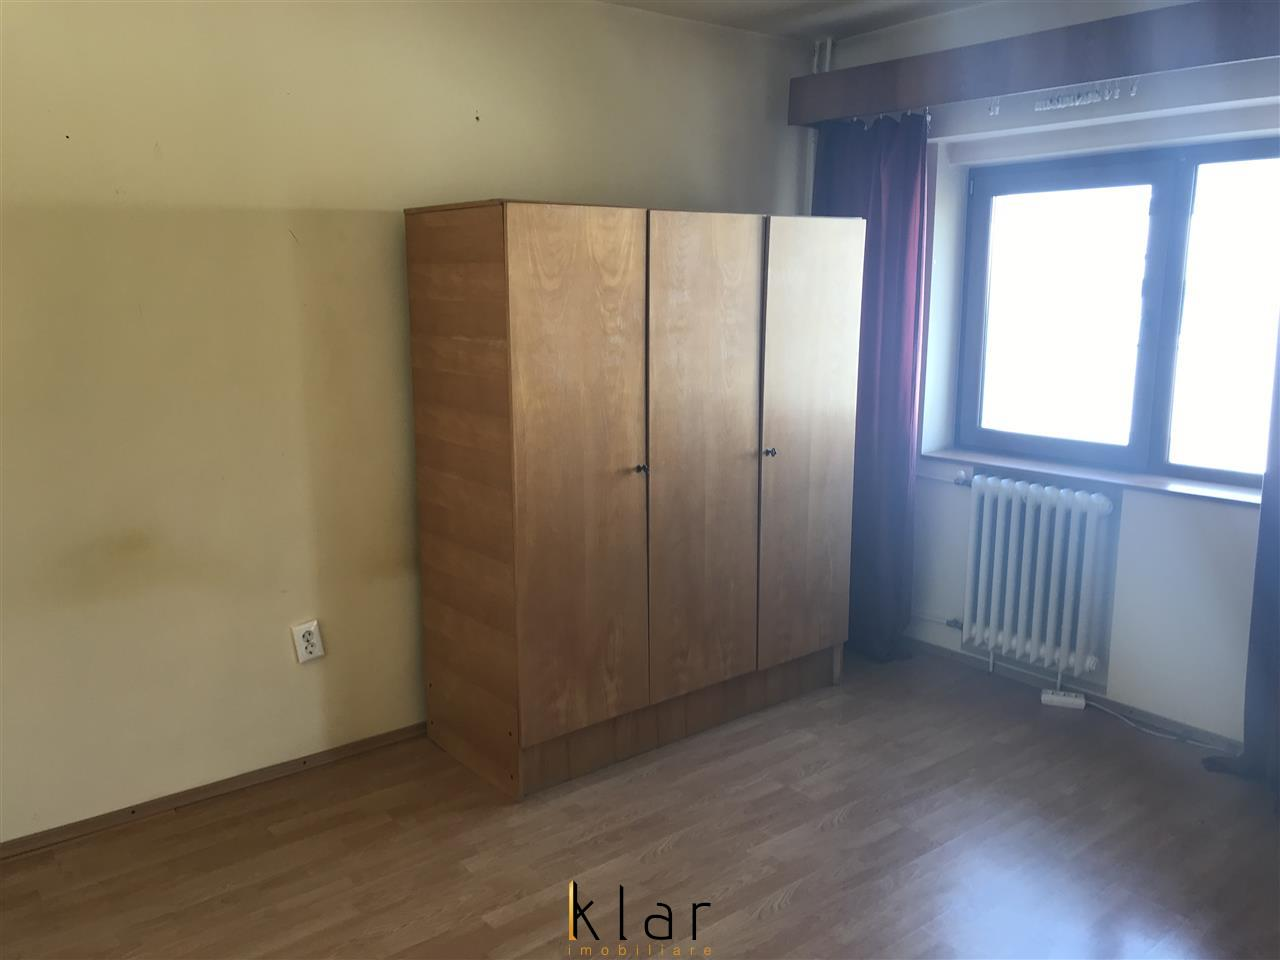 Vanzare apartament 1 camera modern. Oportunitate de investitie!